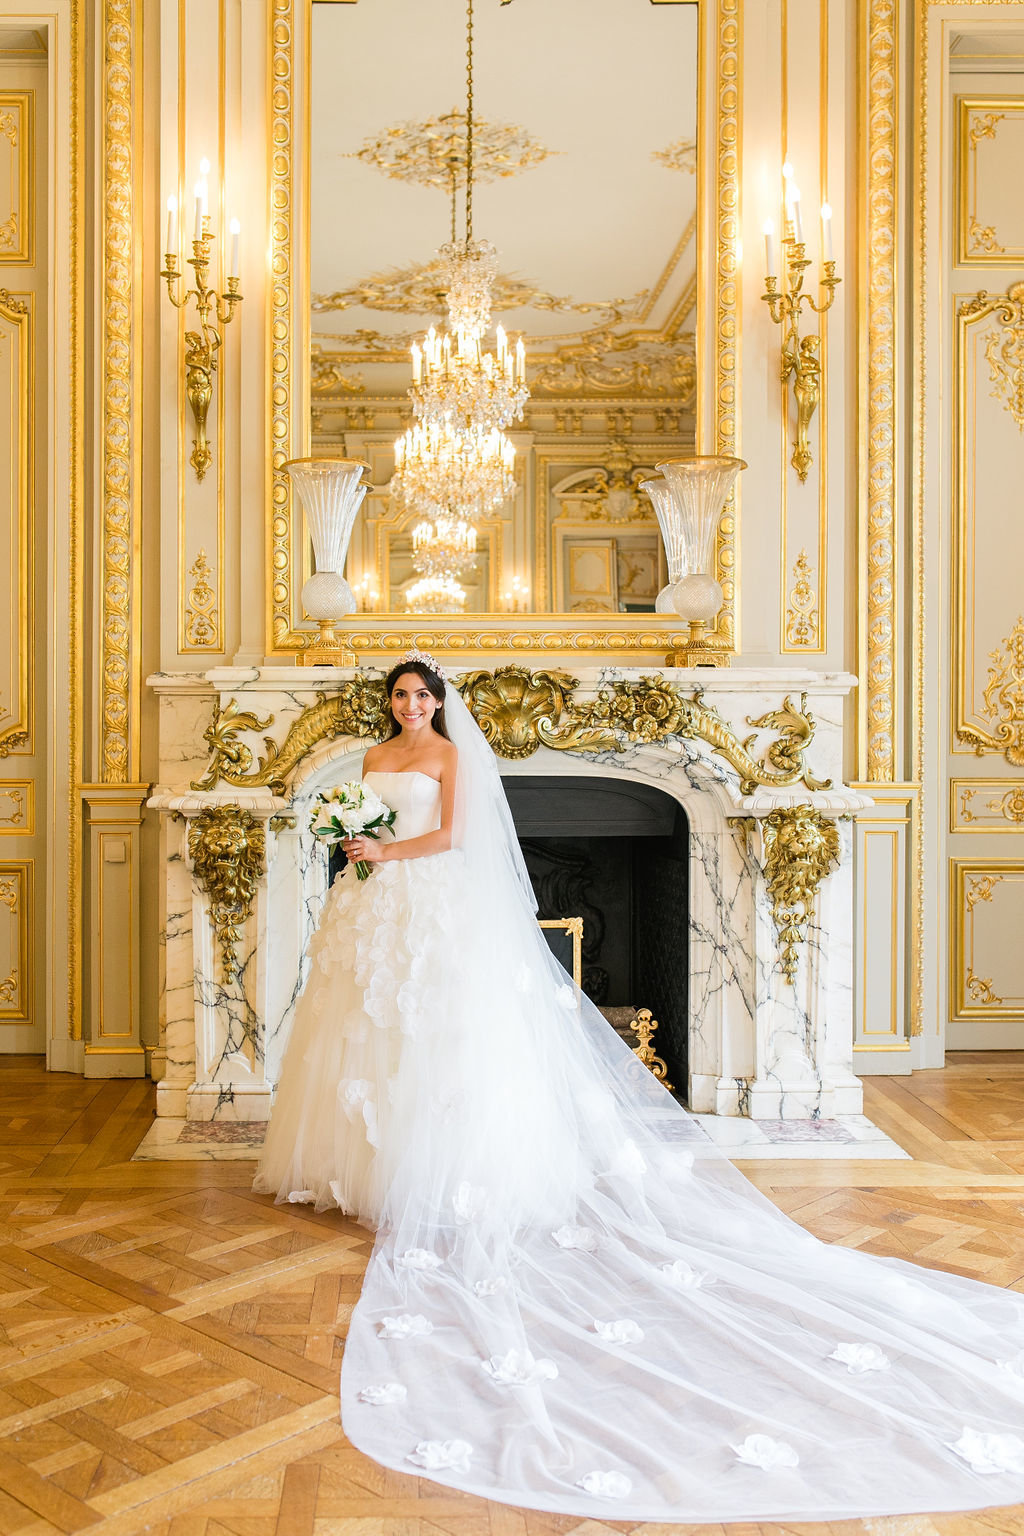 paris-wedding-photographer-shangri-la-roberta-facchini-photography-369